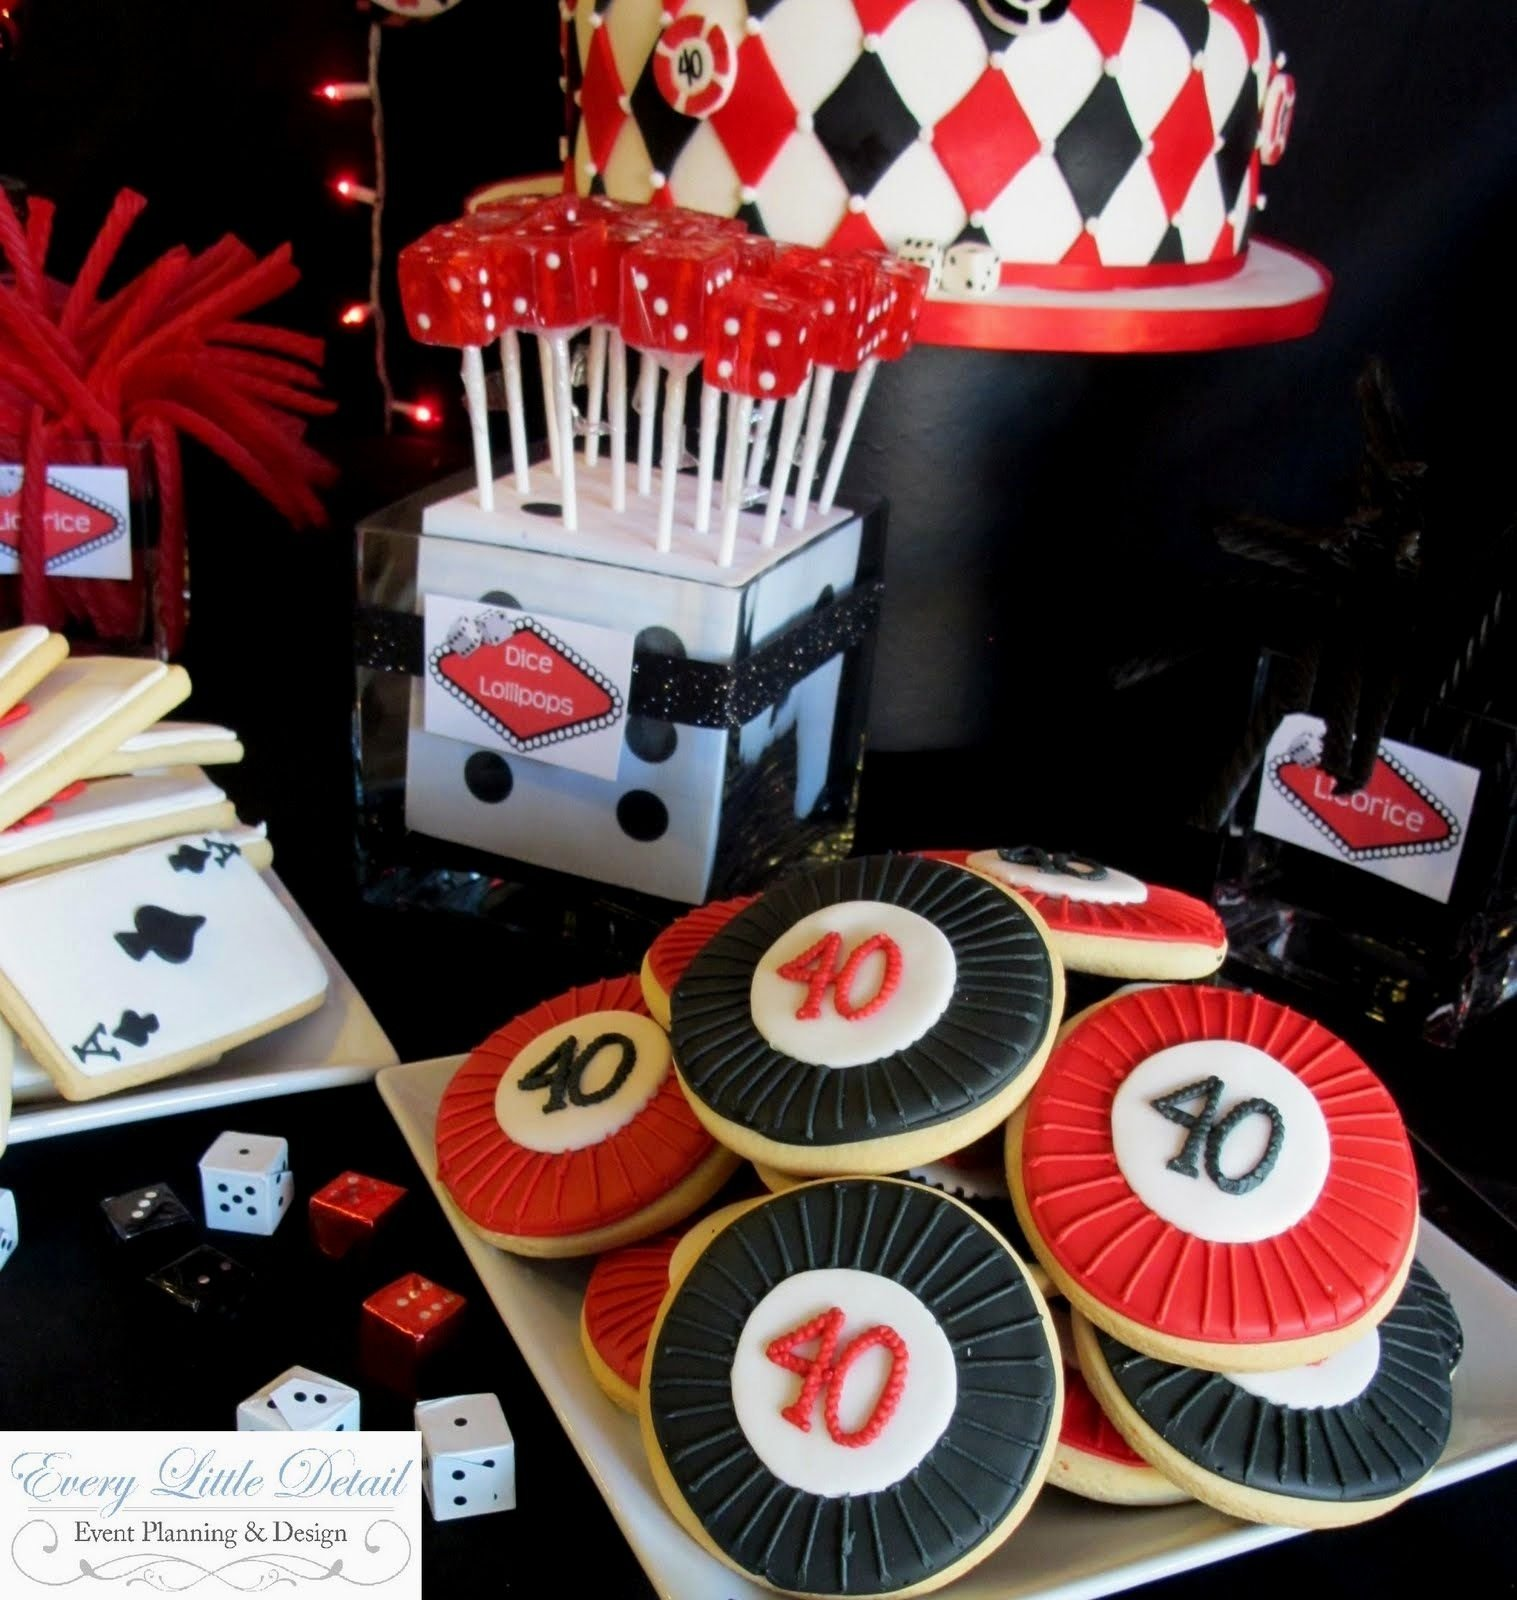 casino birthday party ideas for adults - decorating of party